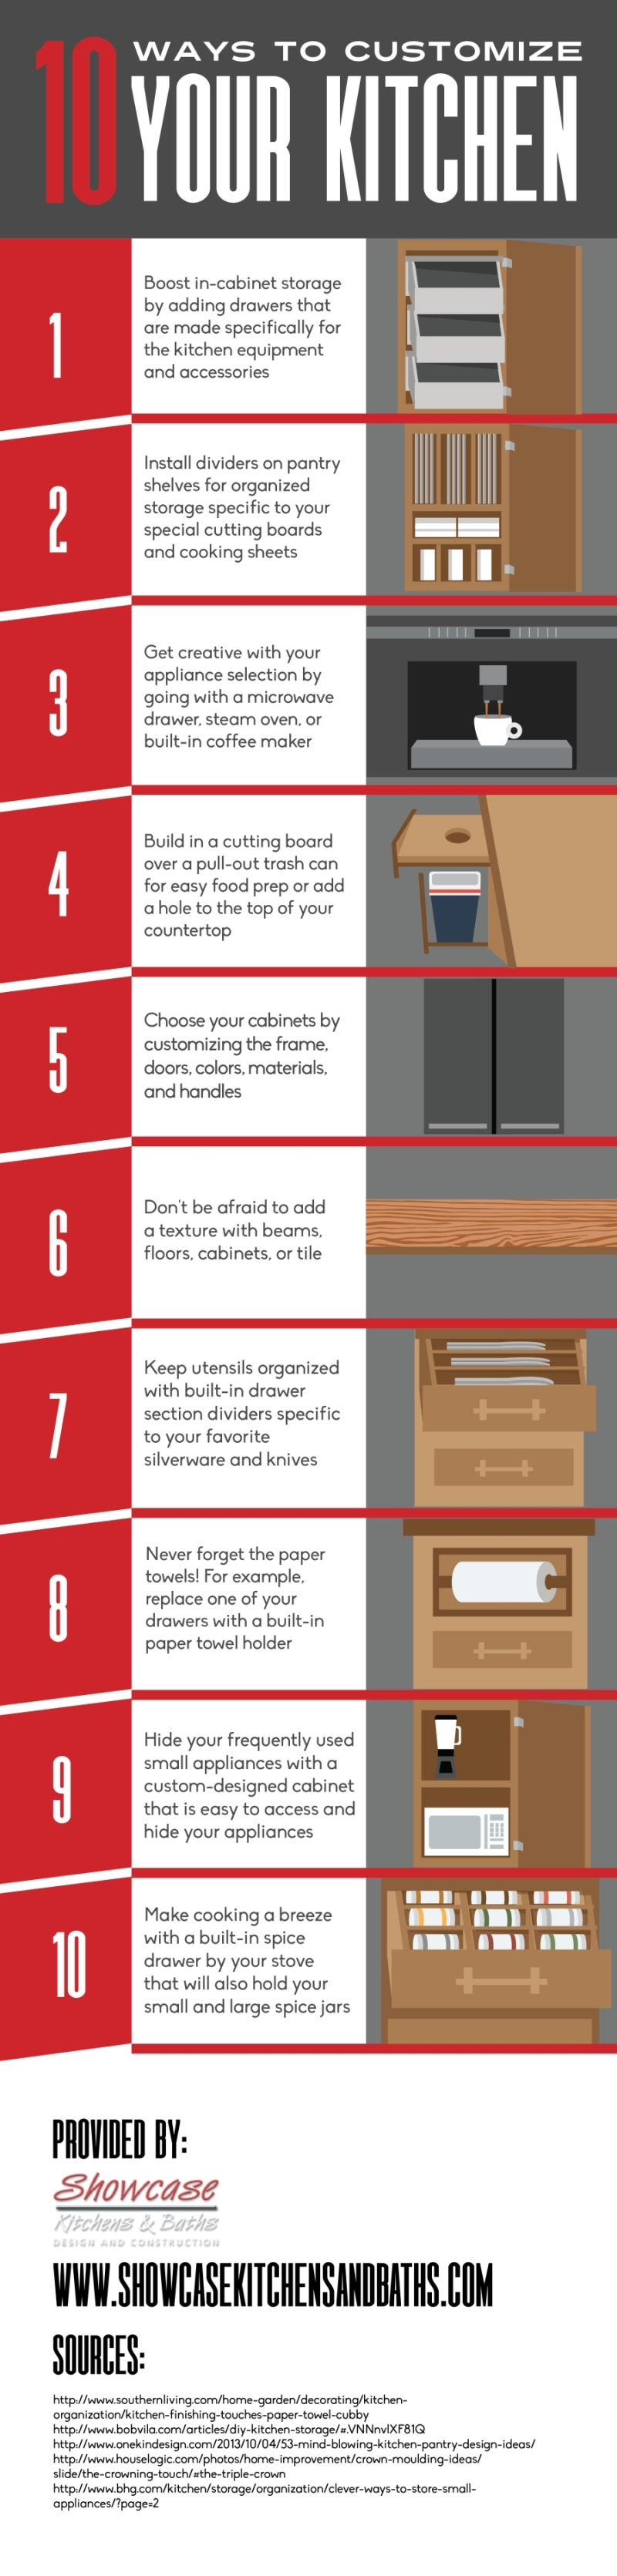 10 Ways to Customize Your Kitchen [INFOGRAPHIC] | Kitchen and Bath ...